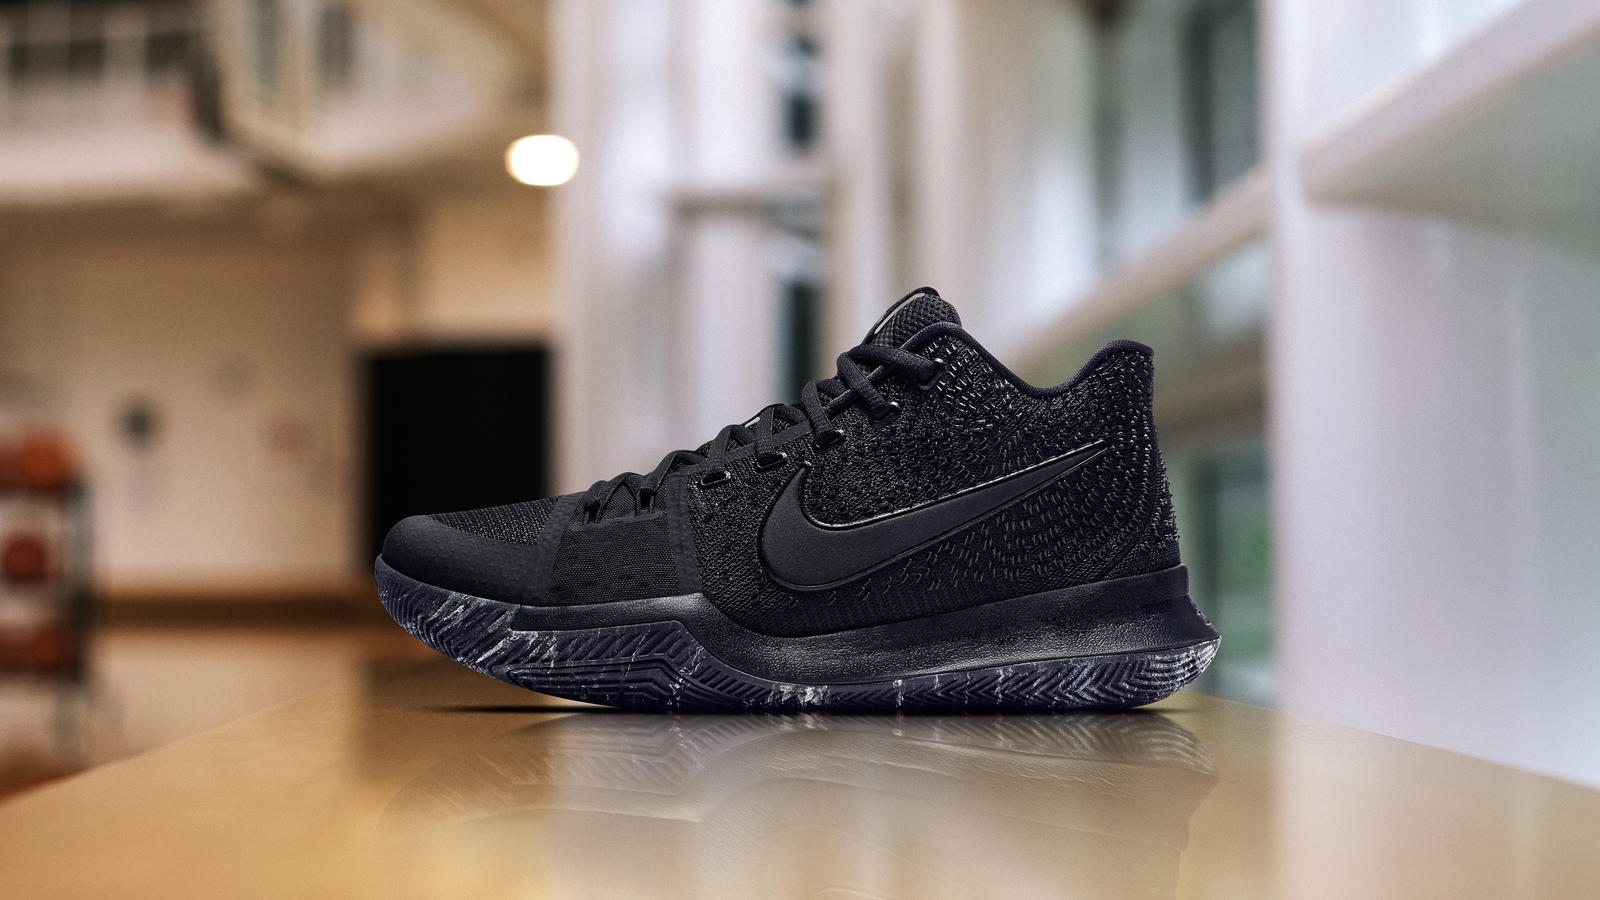 newest collection 4326d 1aa8a A New Nike Kyrie 3 Colorway Comes to the Fore, a Twist on ...